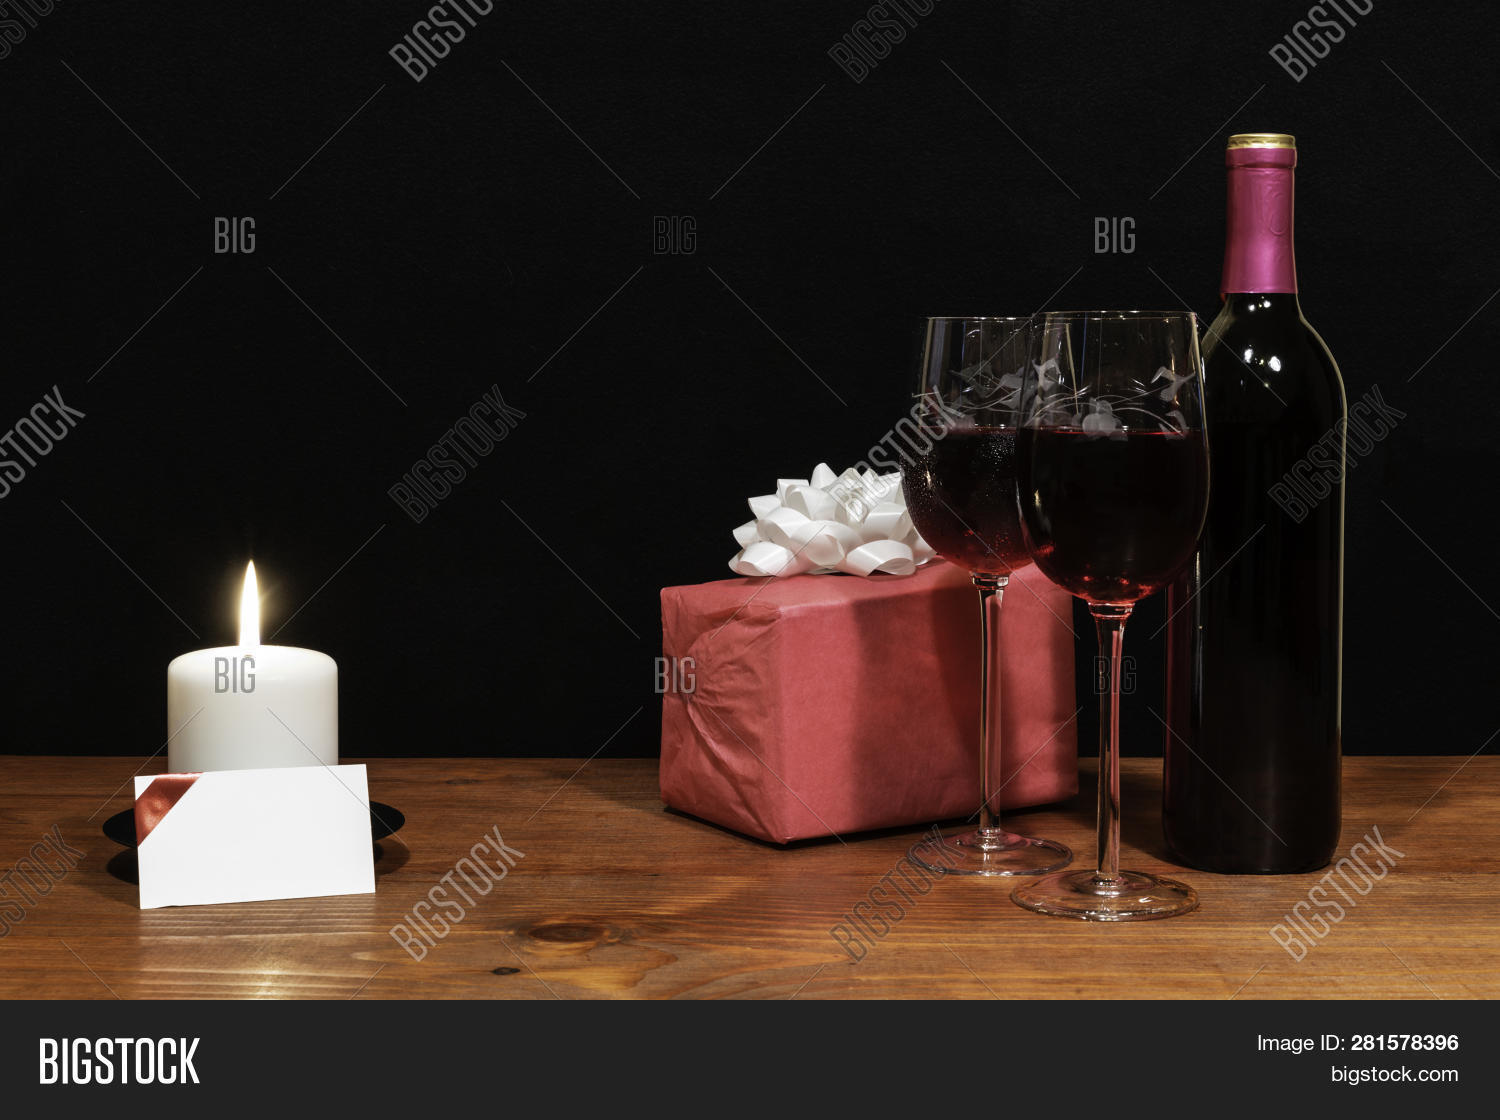 22d81186cd86 Beautiful etched wine glasses and bottle of red wine, white candle, wrapped  present with bow on wooden table with card on dark background.